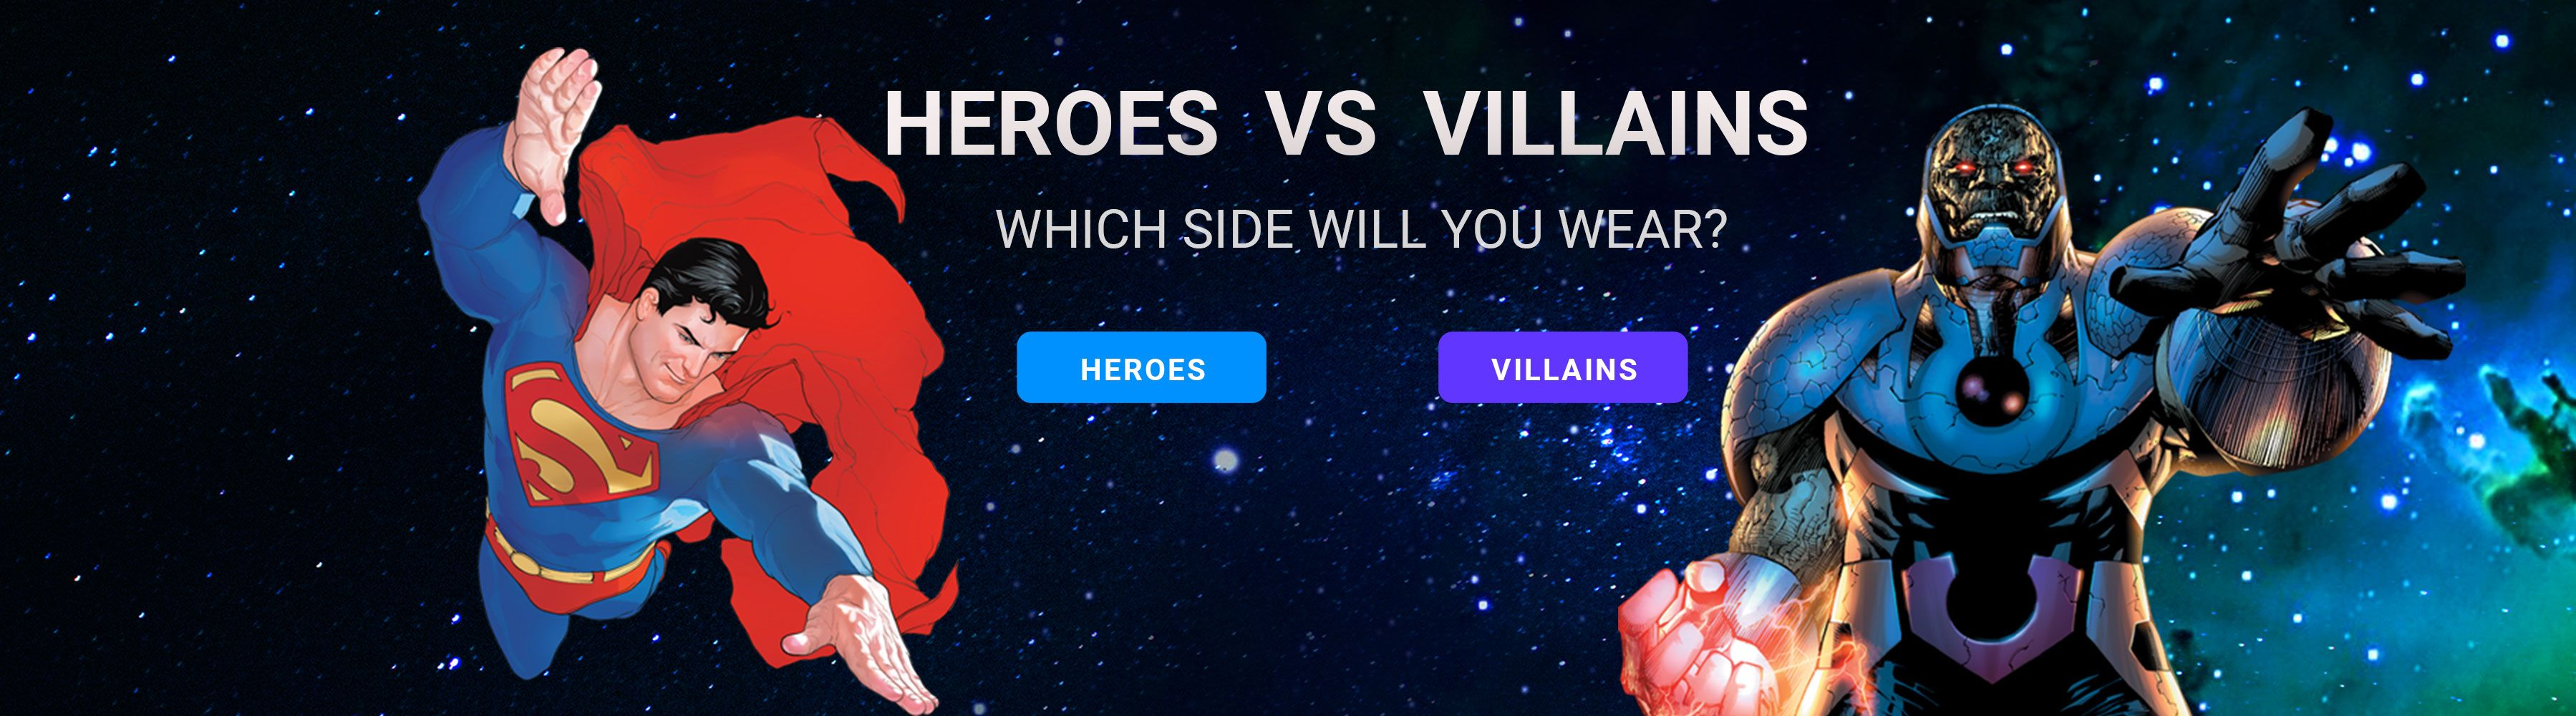 Heroes Vs Villains | Which side will you wear?